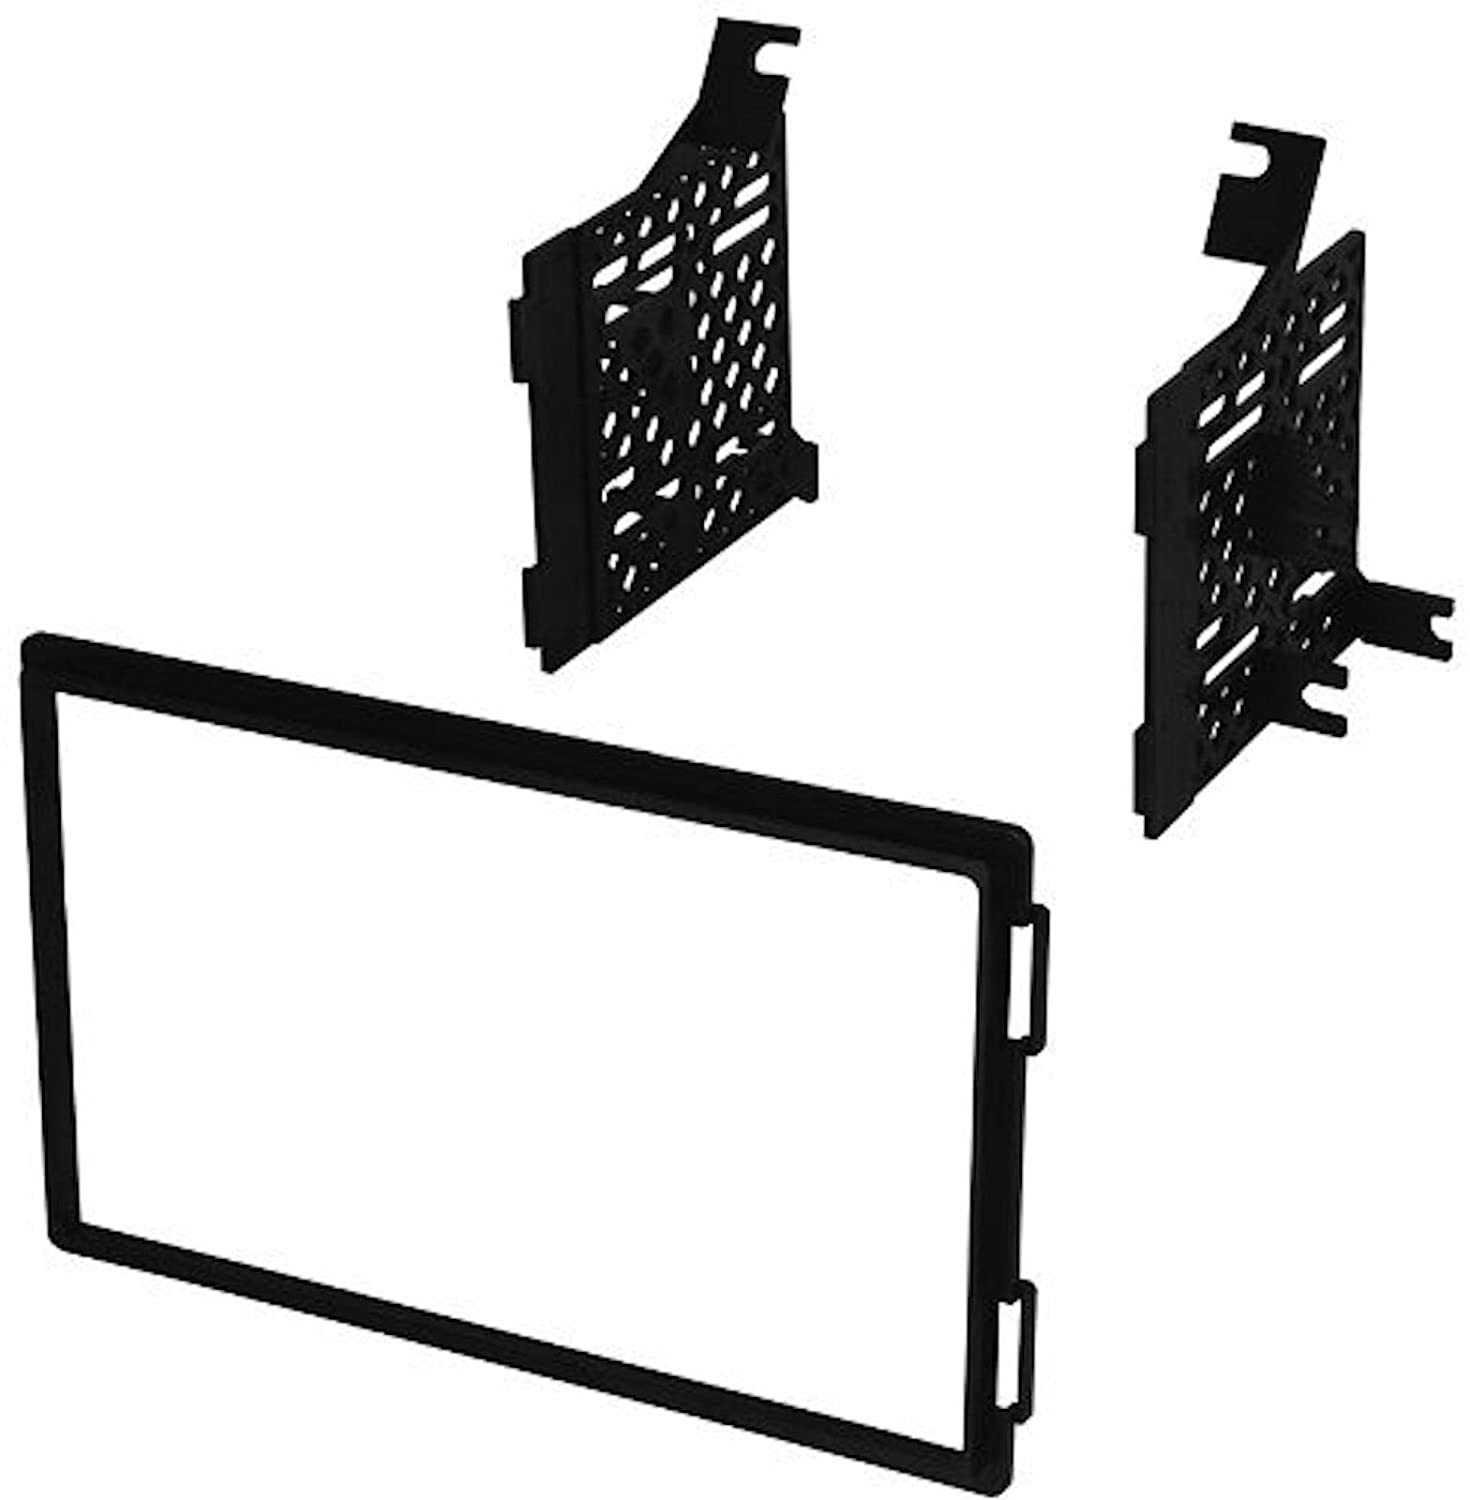 Amazon.com: 2005 2006 2007 2008 2009 2010 2011 2012 2013 2014 Nissan  Frontier Pathfinder Titan Xterra Double Din Dash Kit Install: Automotive